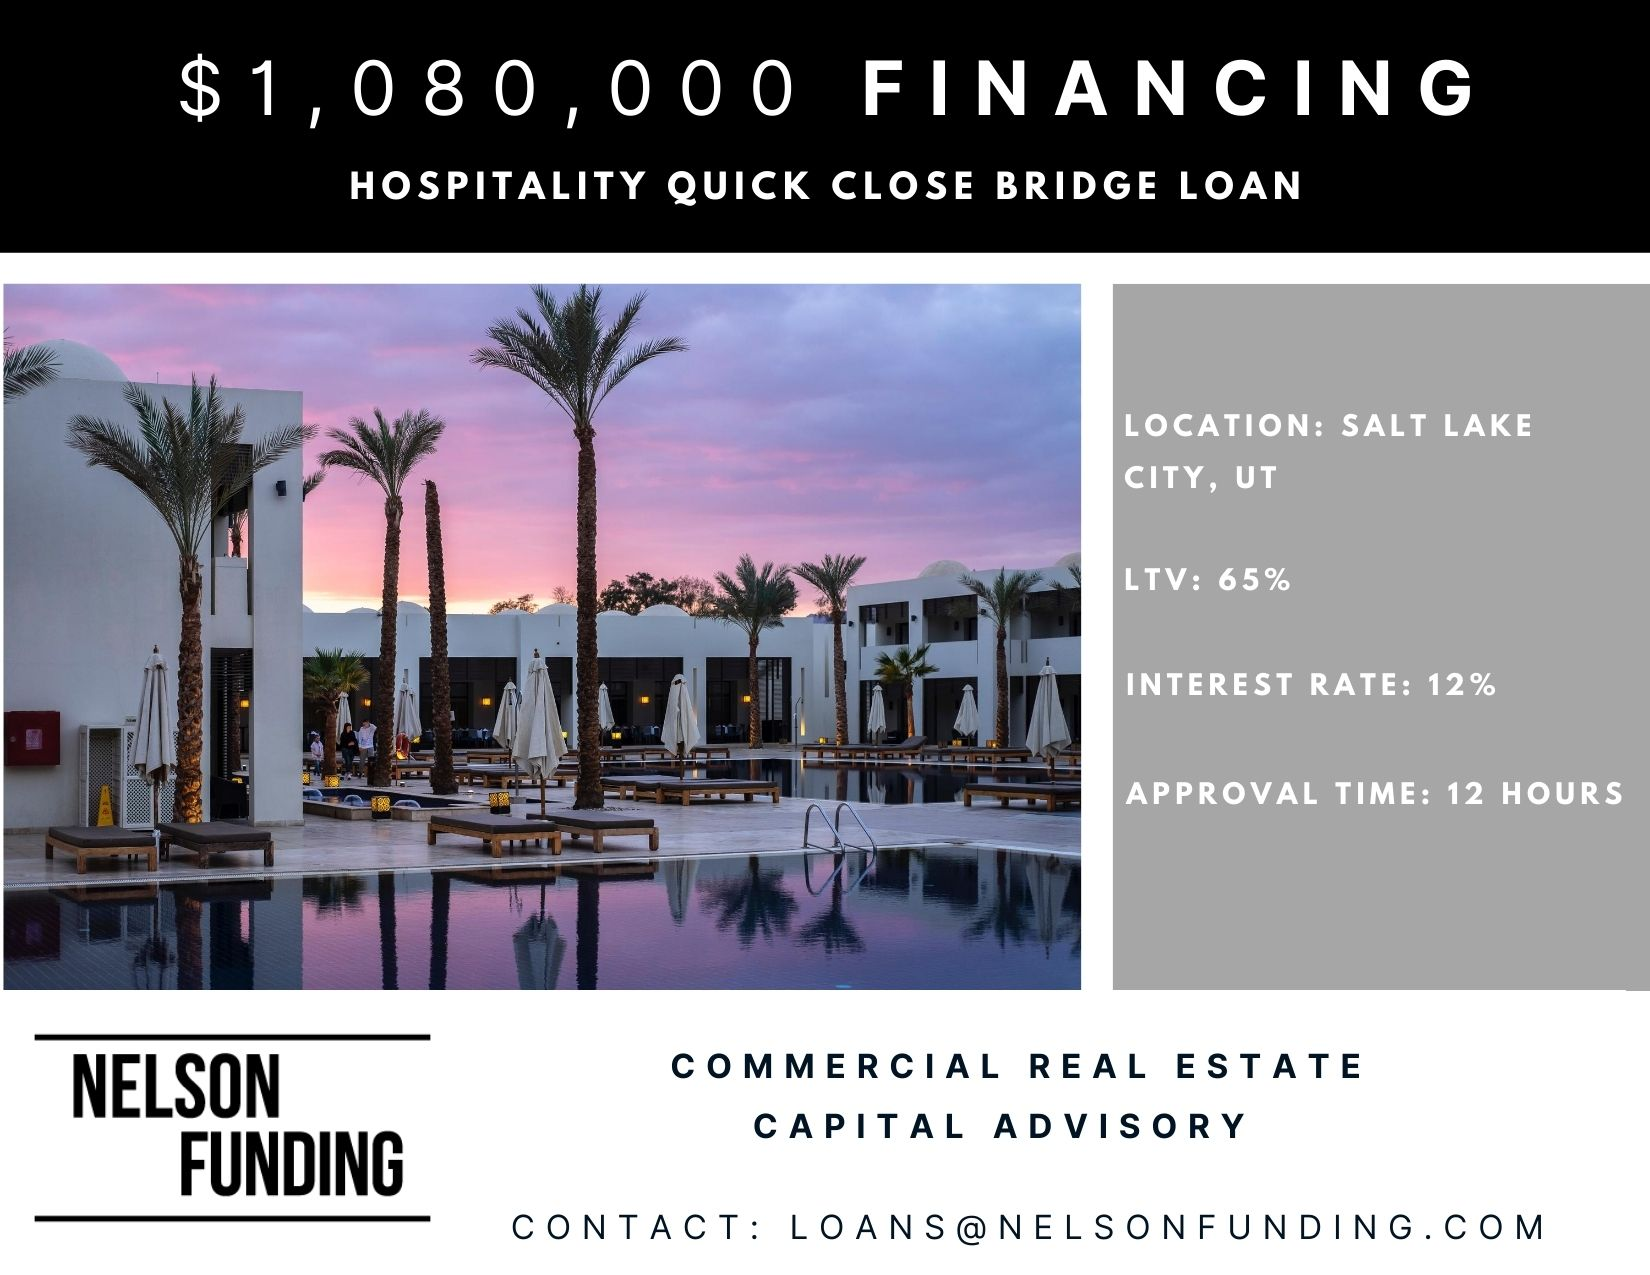 Closes $1,080,000 Hotel Bridge Loan in Salt Lake City, Utah